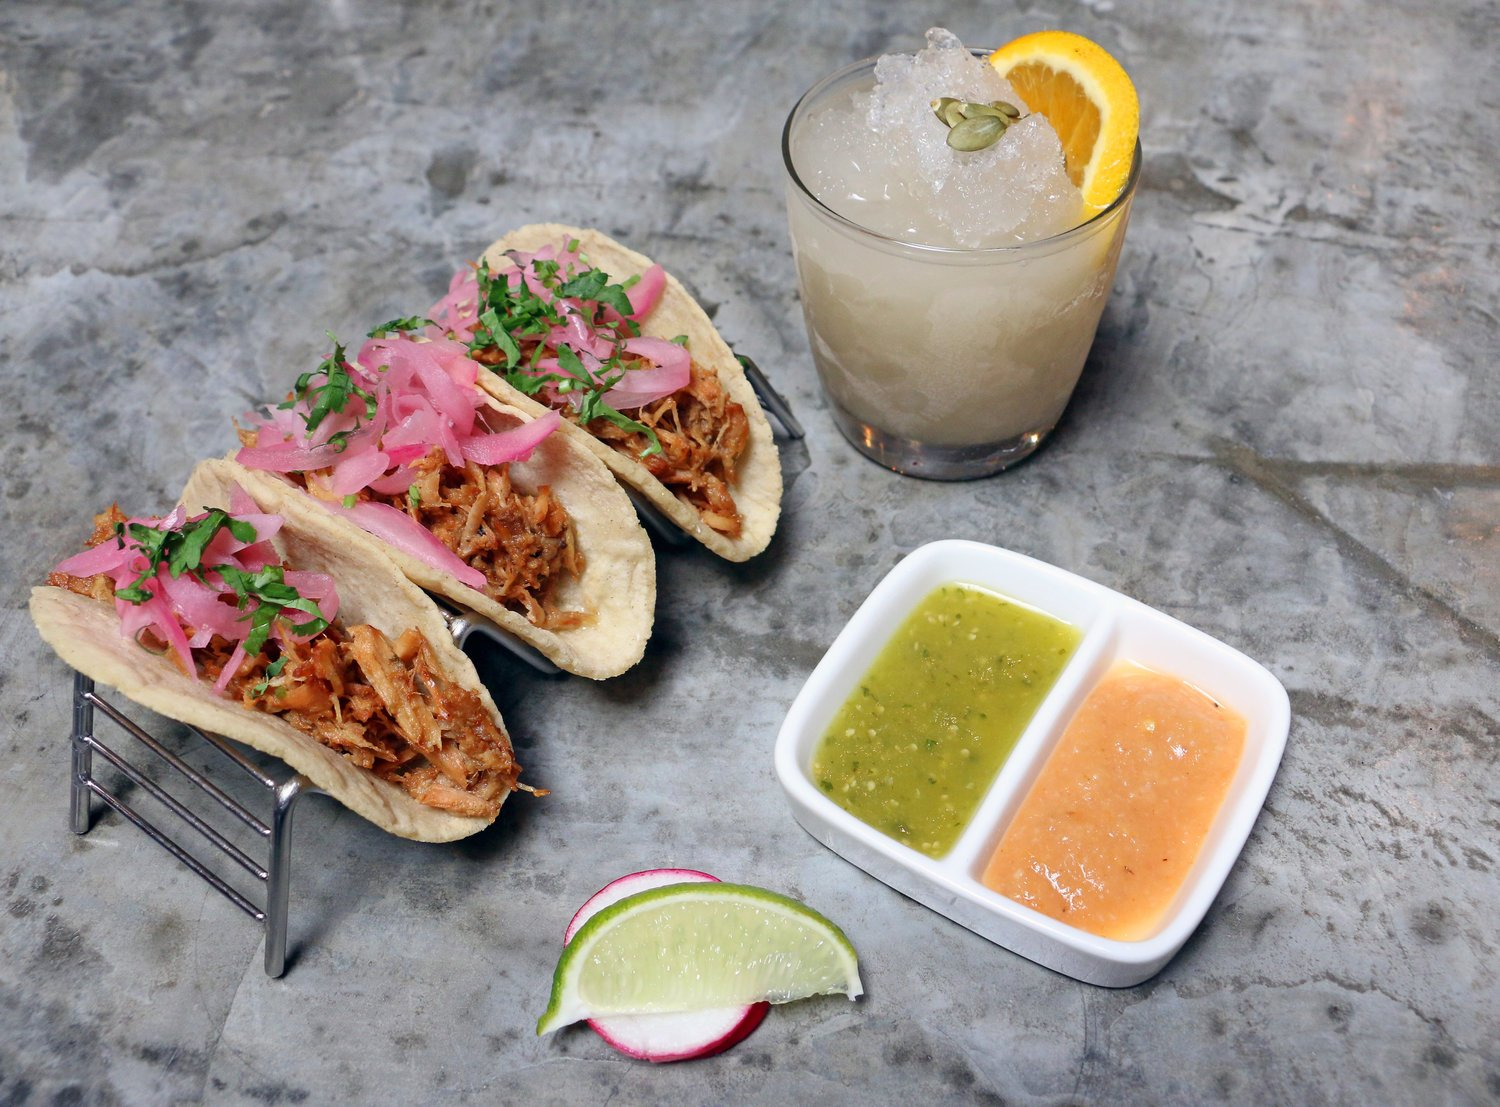 Taqueria del Barrio is reopening on Cinco De Mayo with carryout tacos and margaritas. Photo courtesy of Taqueria del Barrio.